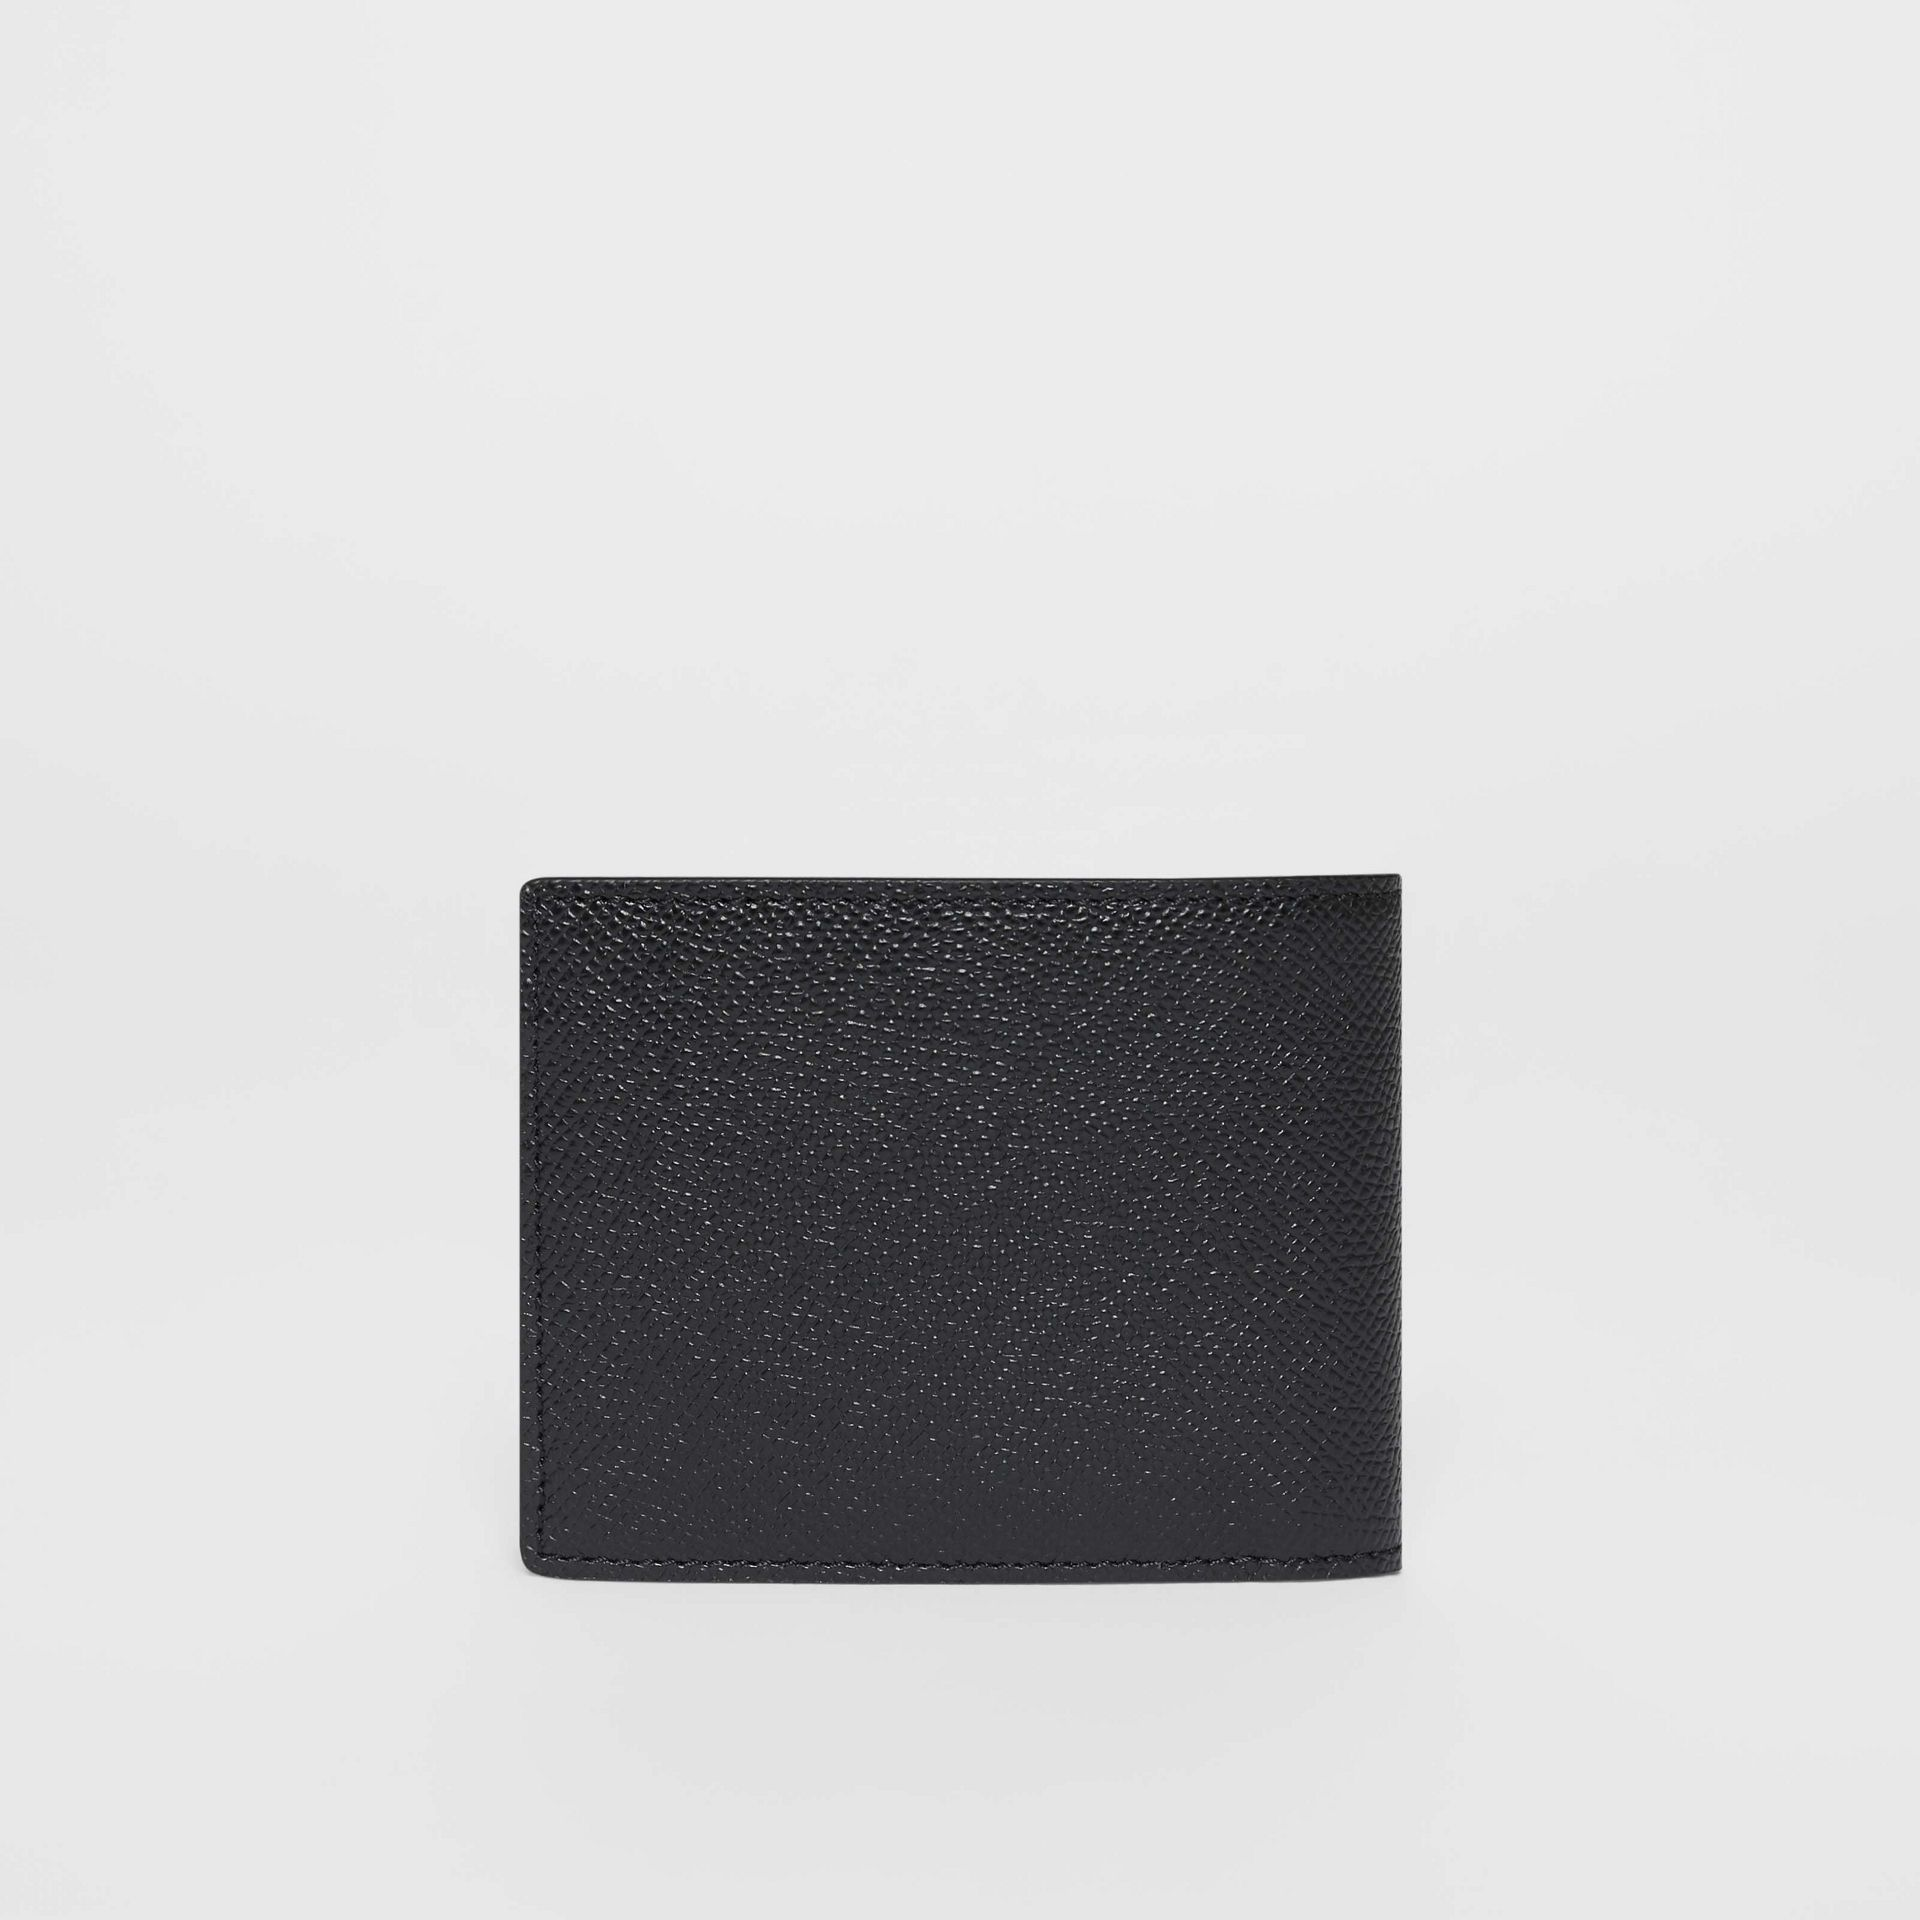 Grainy Leather Bifold Wallet in Black - Men | Burberry - gallery image 4